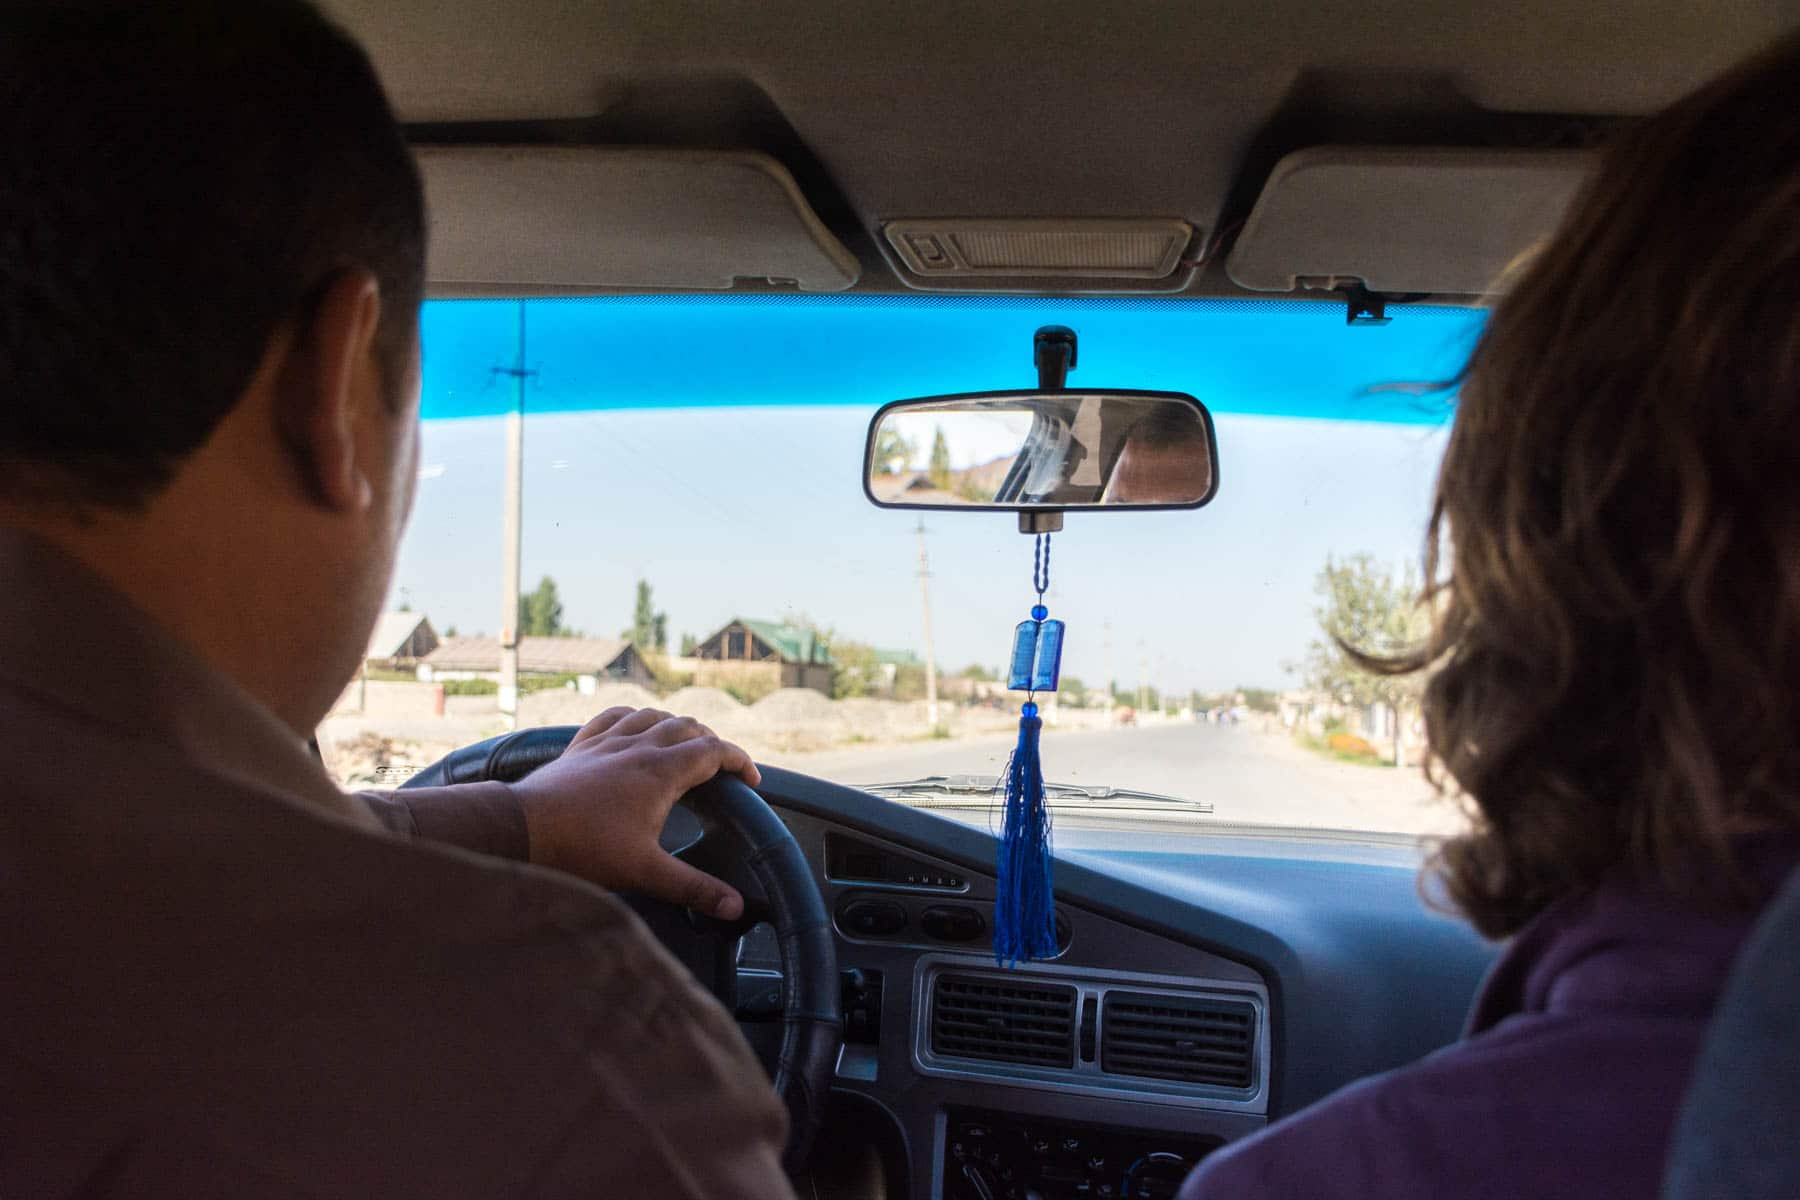 Taxi to Andijan from the Kyrgyzstan - Uzbekistan border crossing at Dostyk - Lost With Purpose